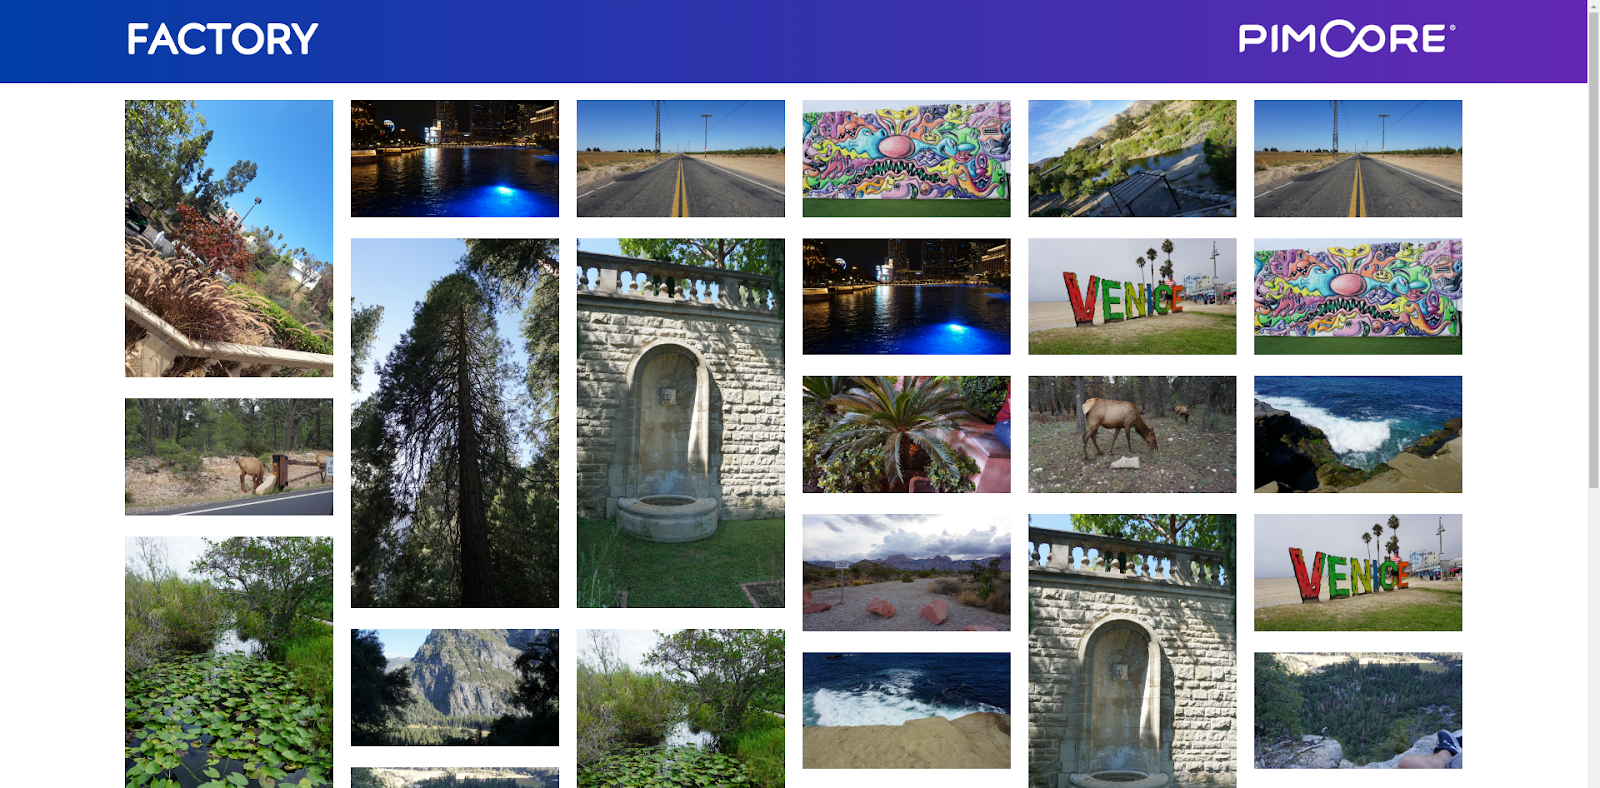 An example of an image gallery created before using Pimcore thumbnails